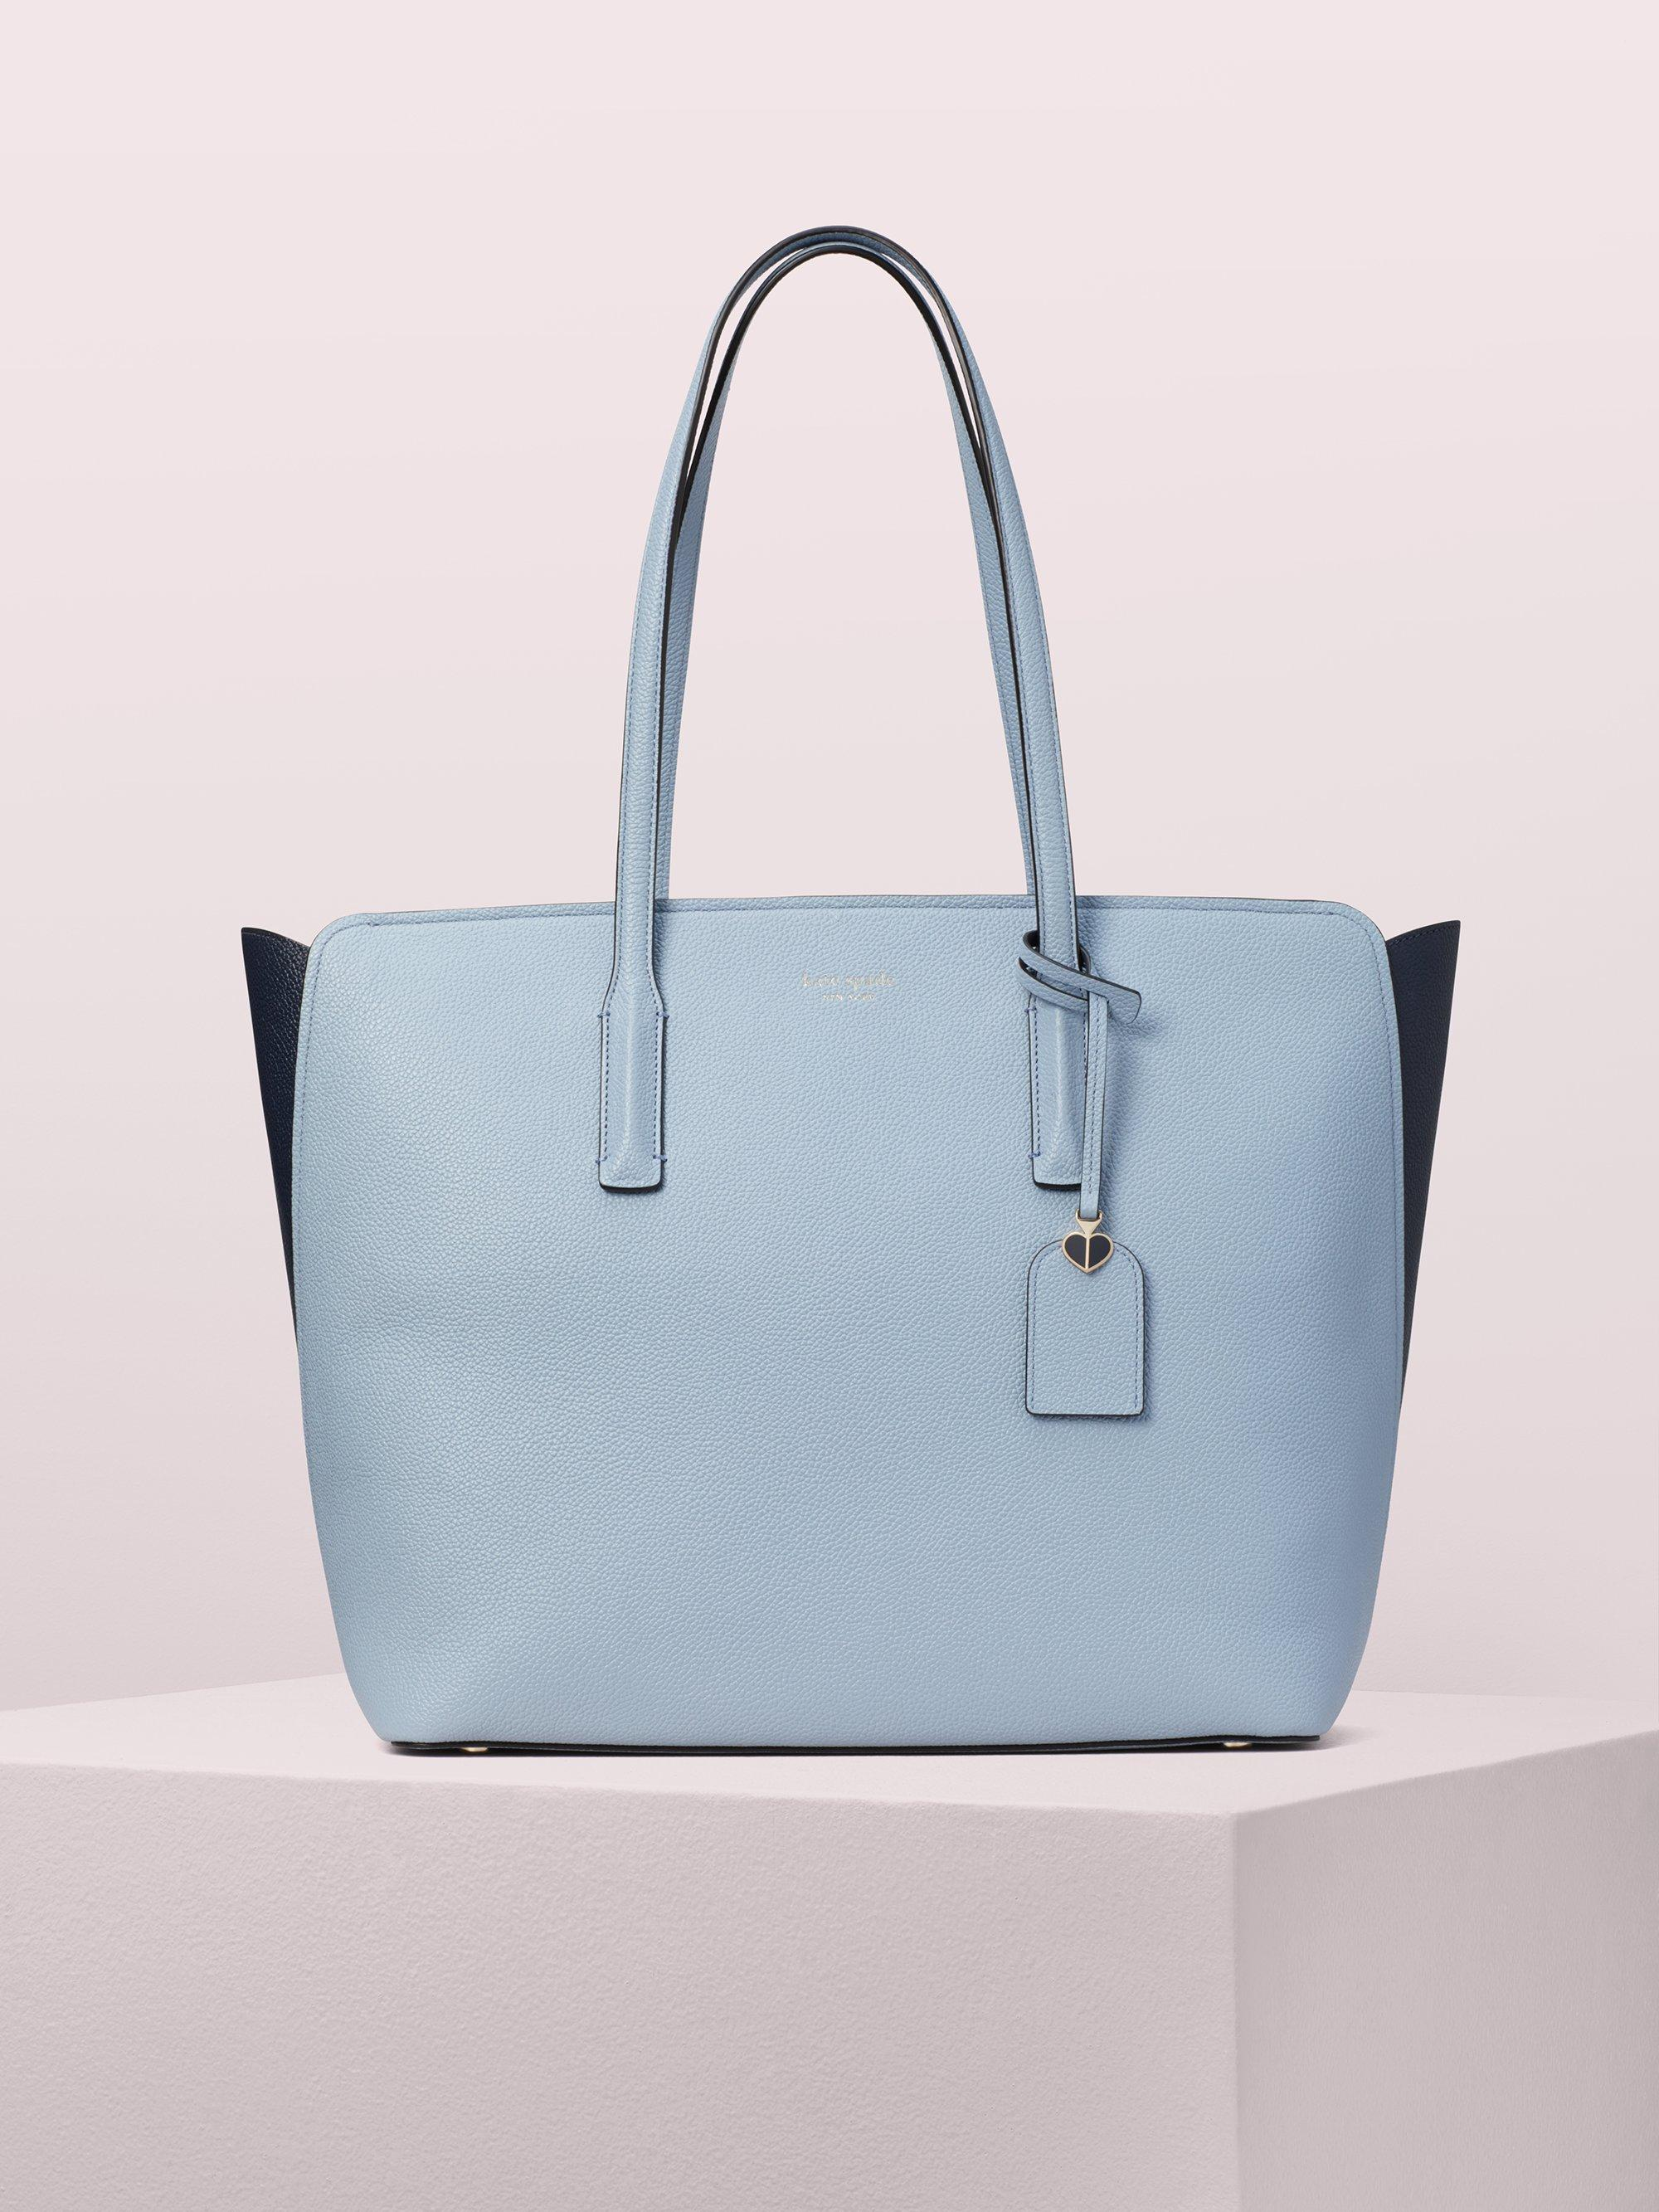 4fc932f95c00 Kate Spade. Women s Blue Margaux Large Tote.  298 From kate spade new york